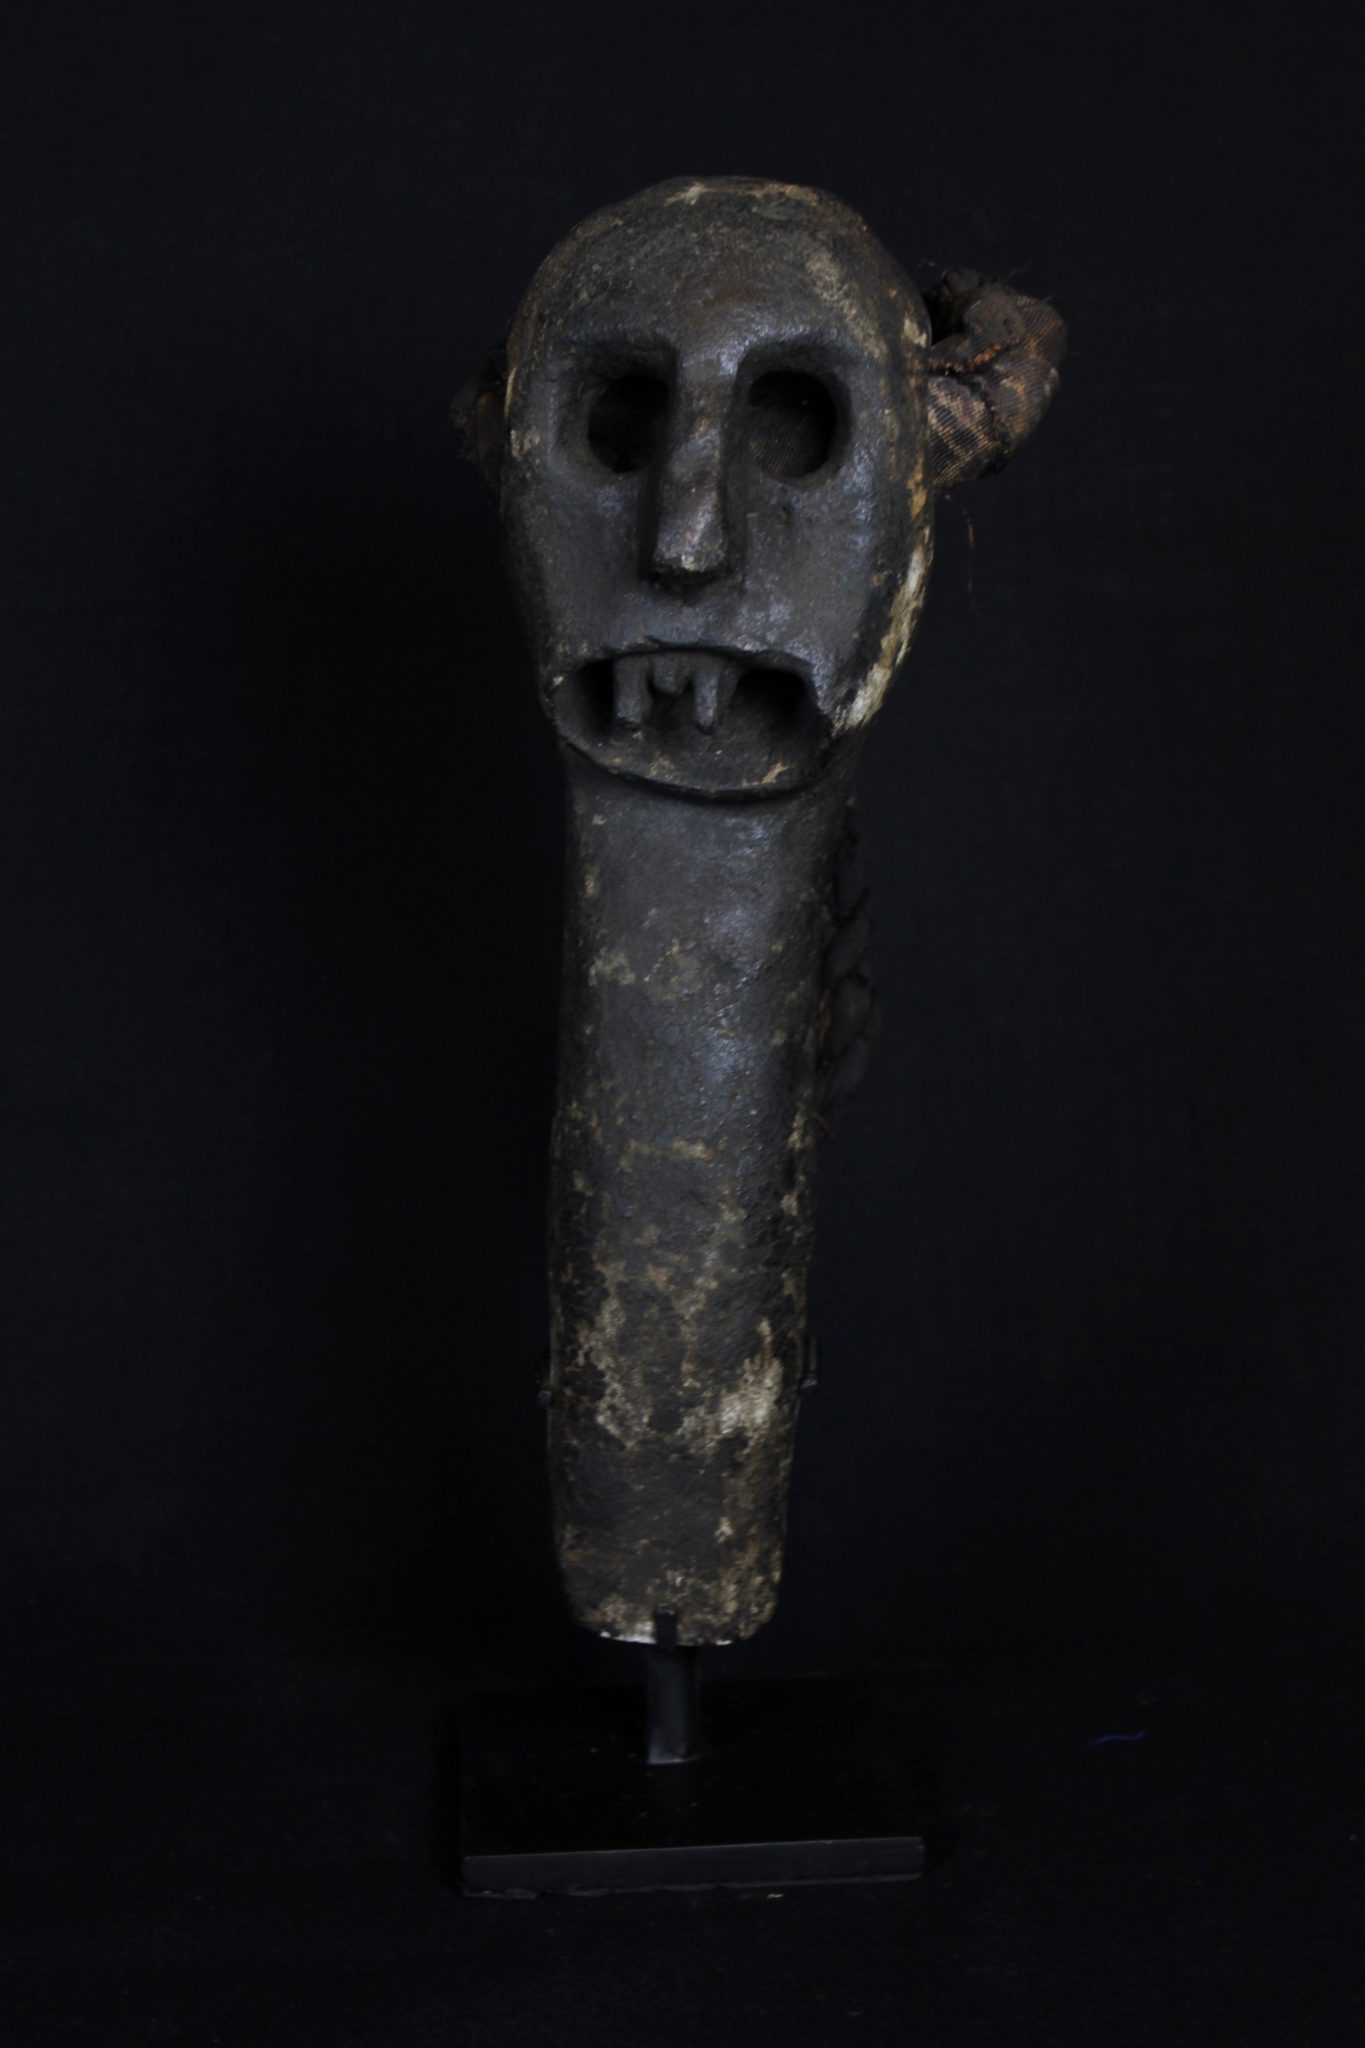 """Nitta Watu (rare), Kitchen Protector Figure - Shaman Power Object, West Flores Island, Lesser Sunda Islands, Indonesia, Maumere district, Nita or Bena Village, Early to mid 19th c, Stone, pigment, cloth strap for hanging. Used to protect a house or home. 14"""" x 5 ½"""" x 6"""", $1700."""